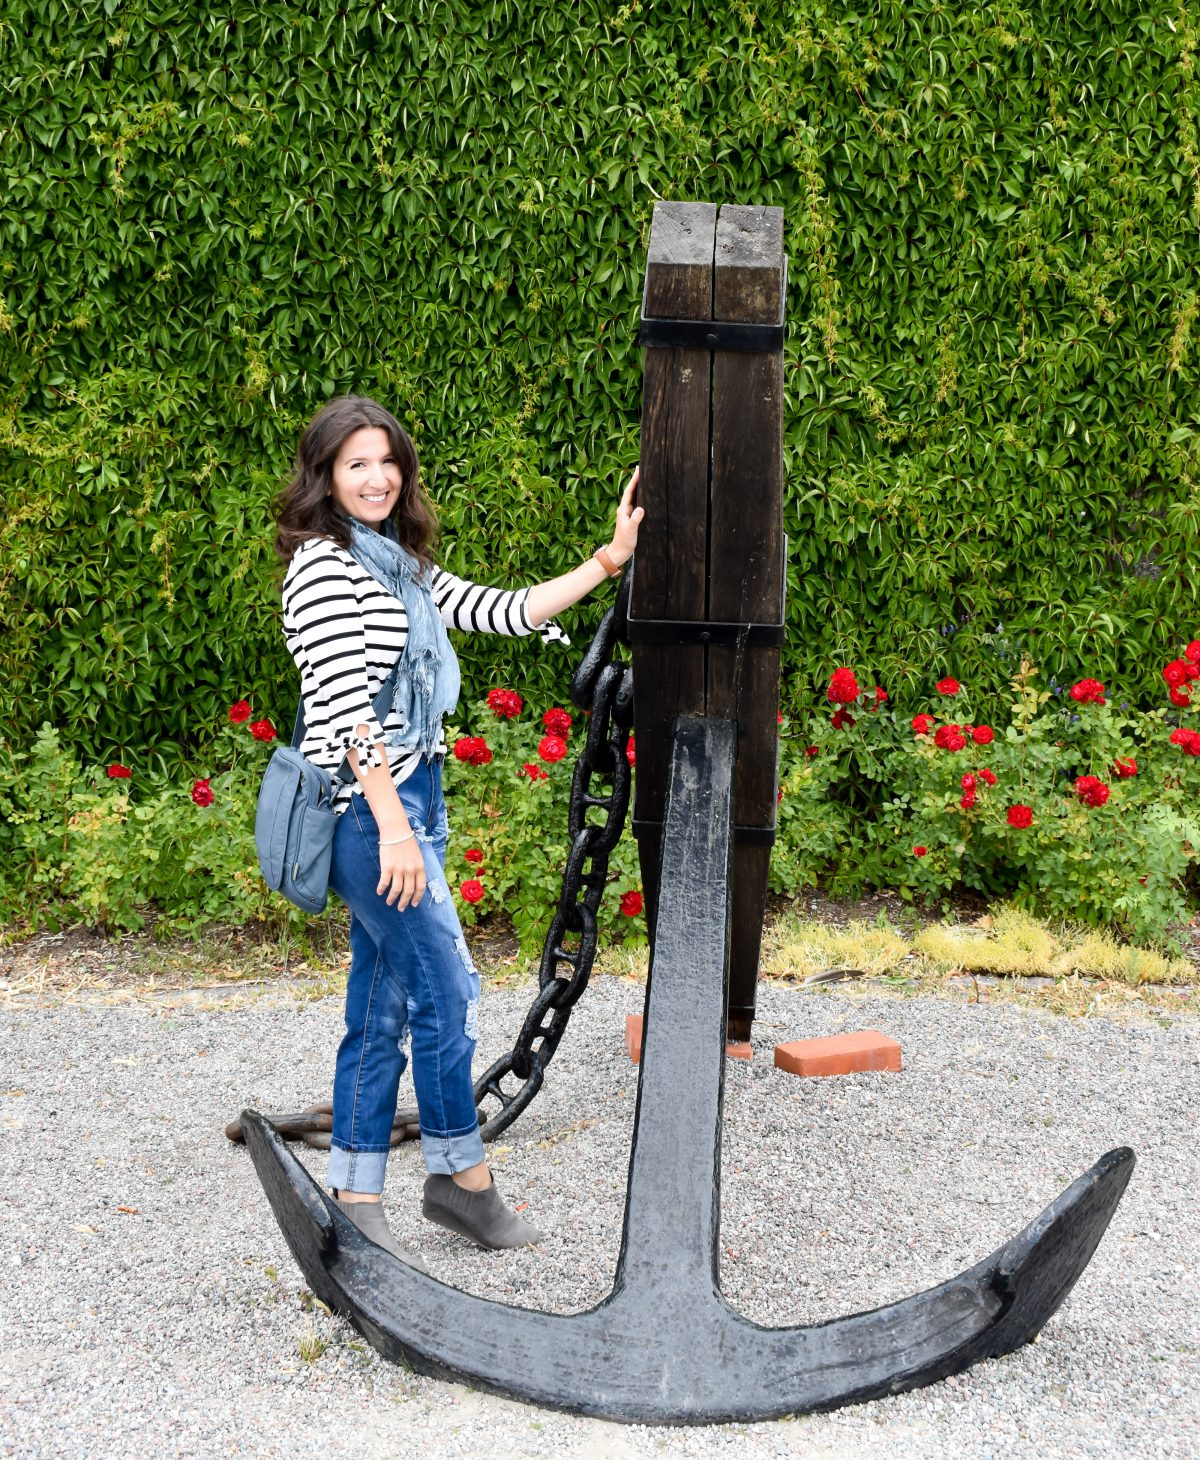 Erin poses with a large vintage anchor in Vaxholm, Sweden wearing a nautical striped tee.